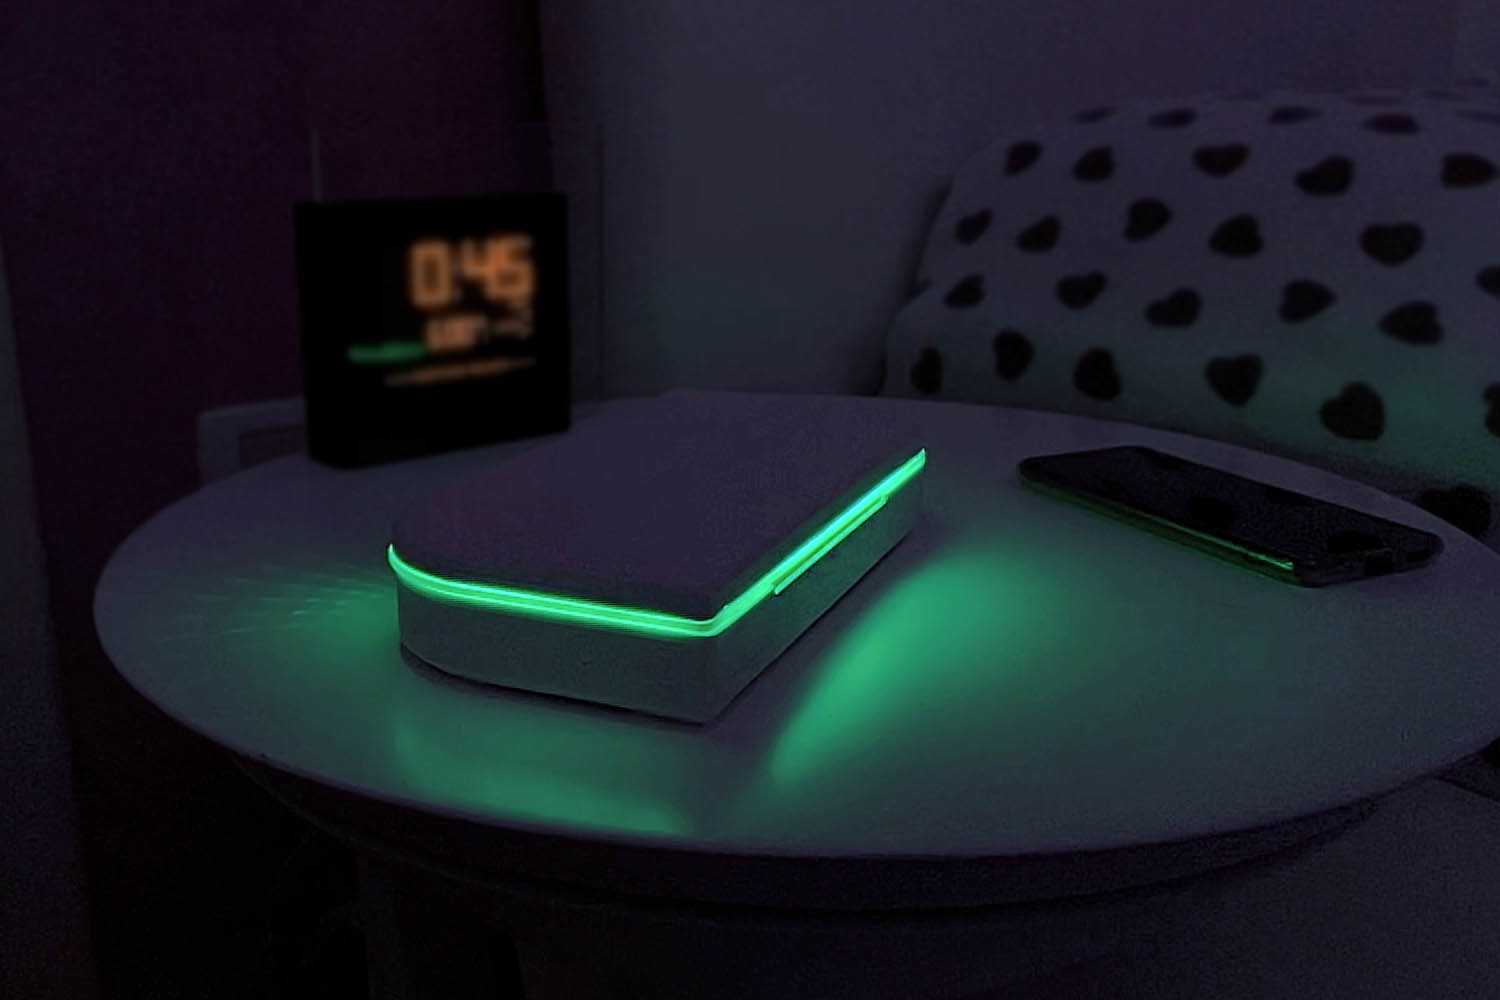 dimmenso smart light close with green light